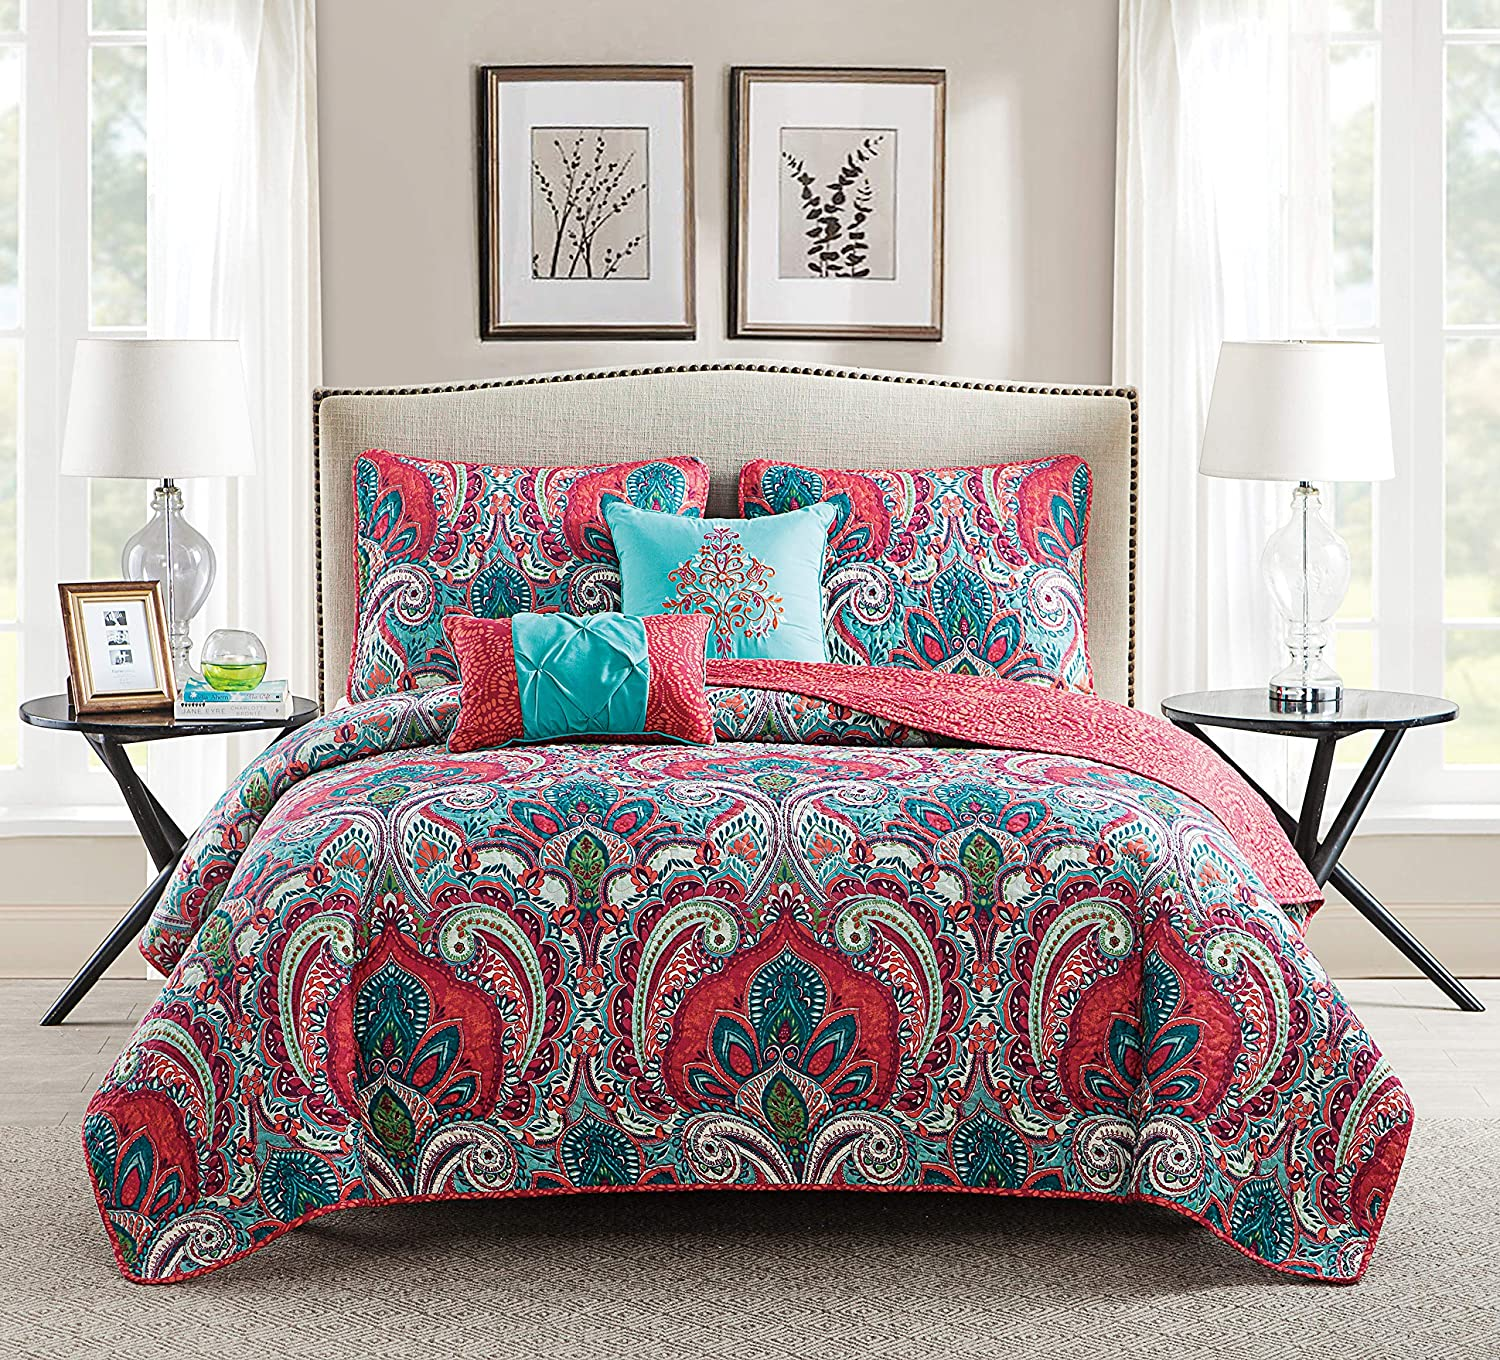 VCNY Home Full/Queen Size Quilt Set in Multicolor Bohemian Style